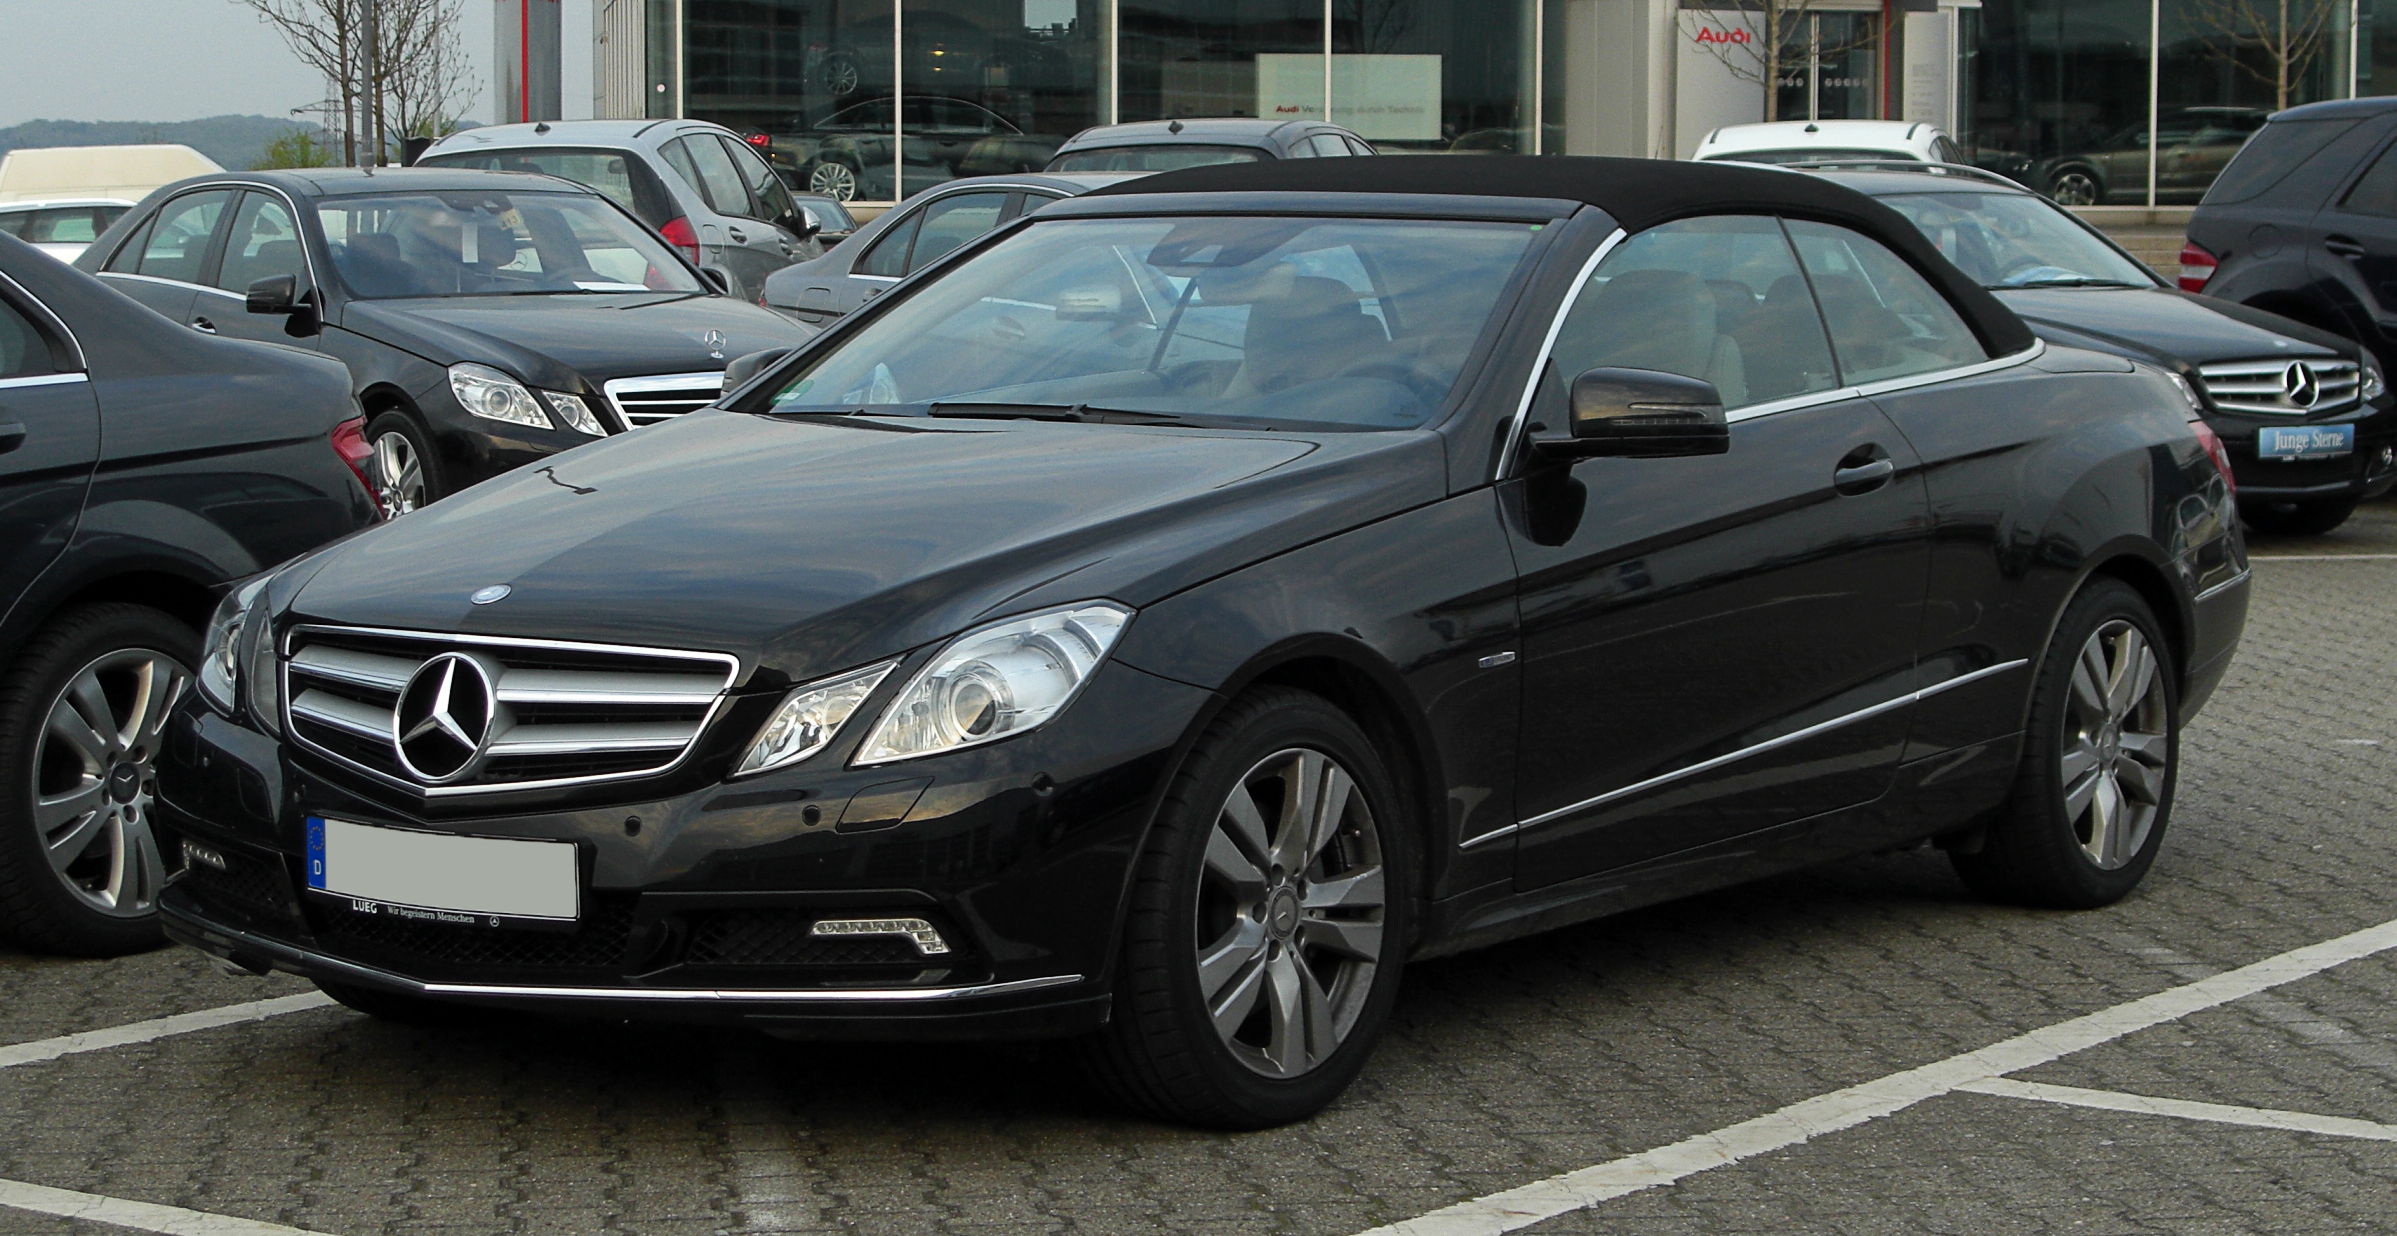 mercedes benz e250 cdi cabriolet photos reviews news specs buy car. Black Bedroom Furniture Sets. Home Design Ideas